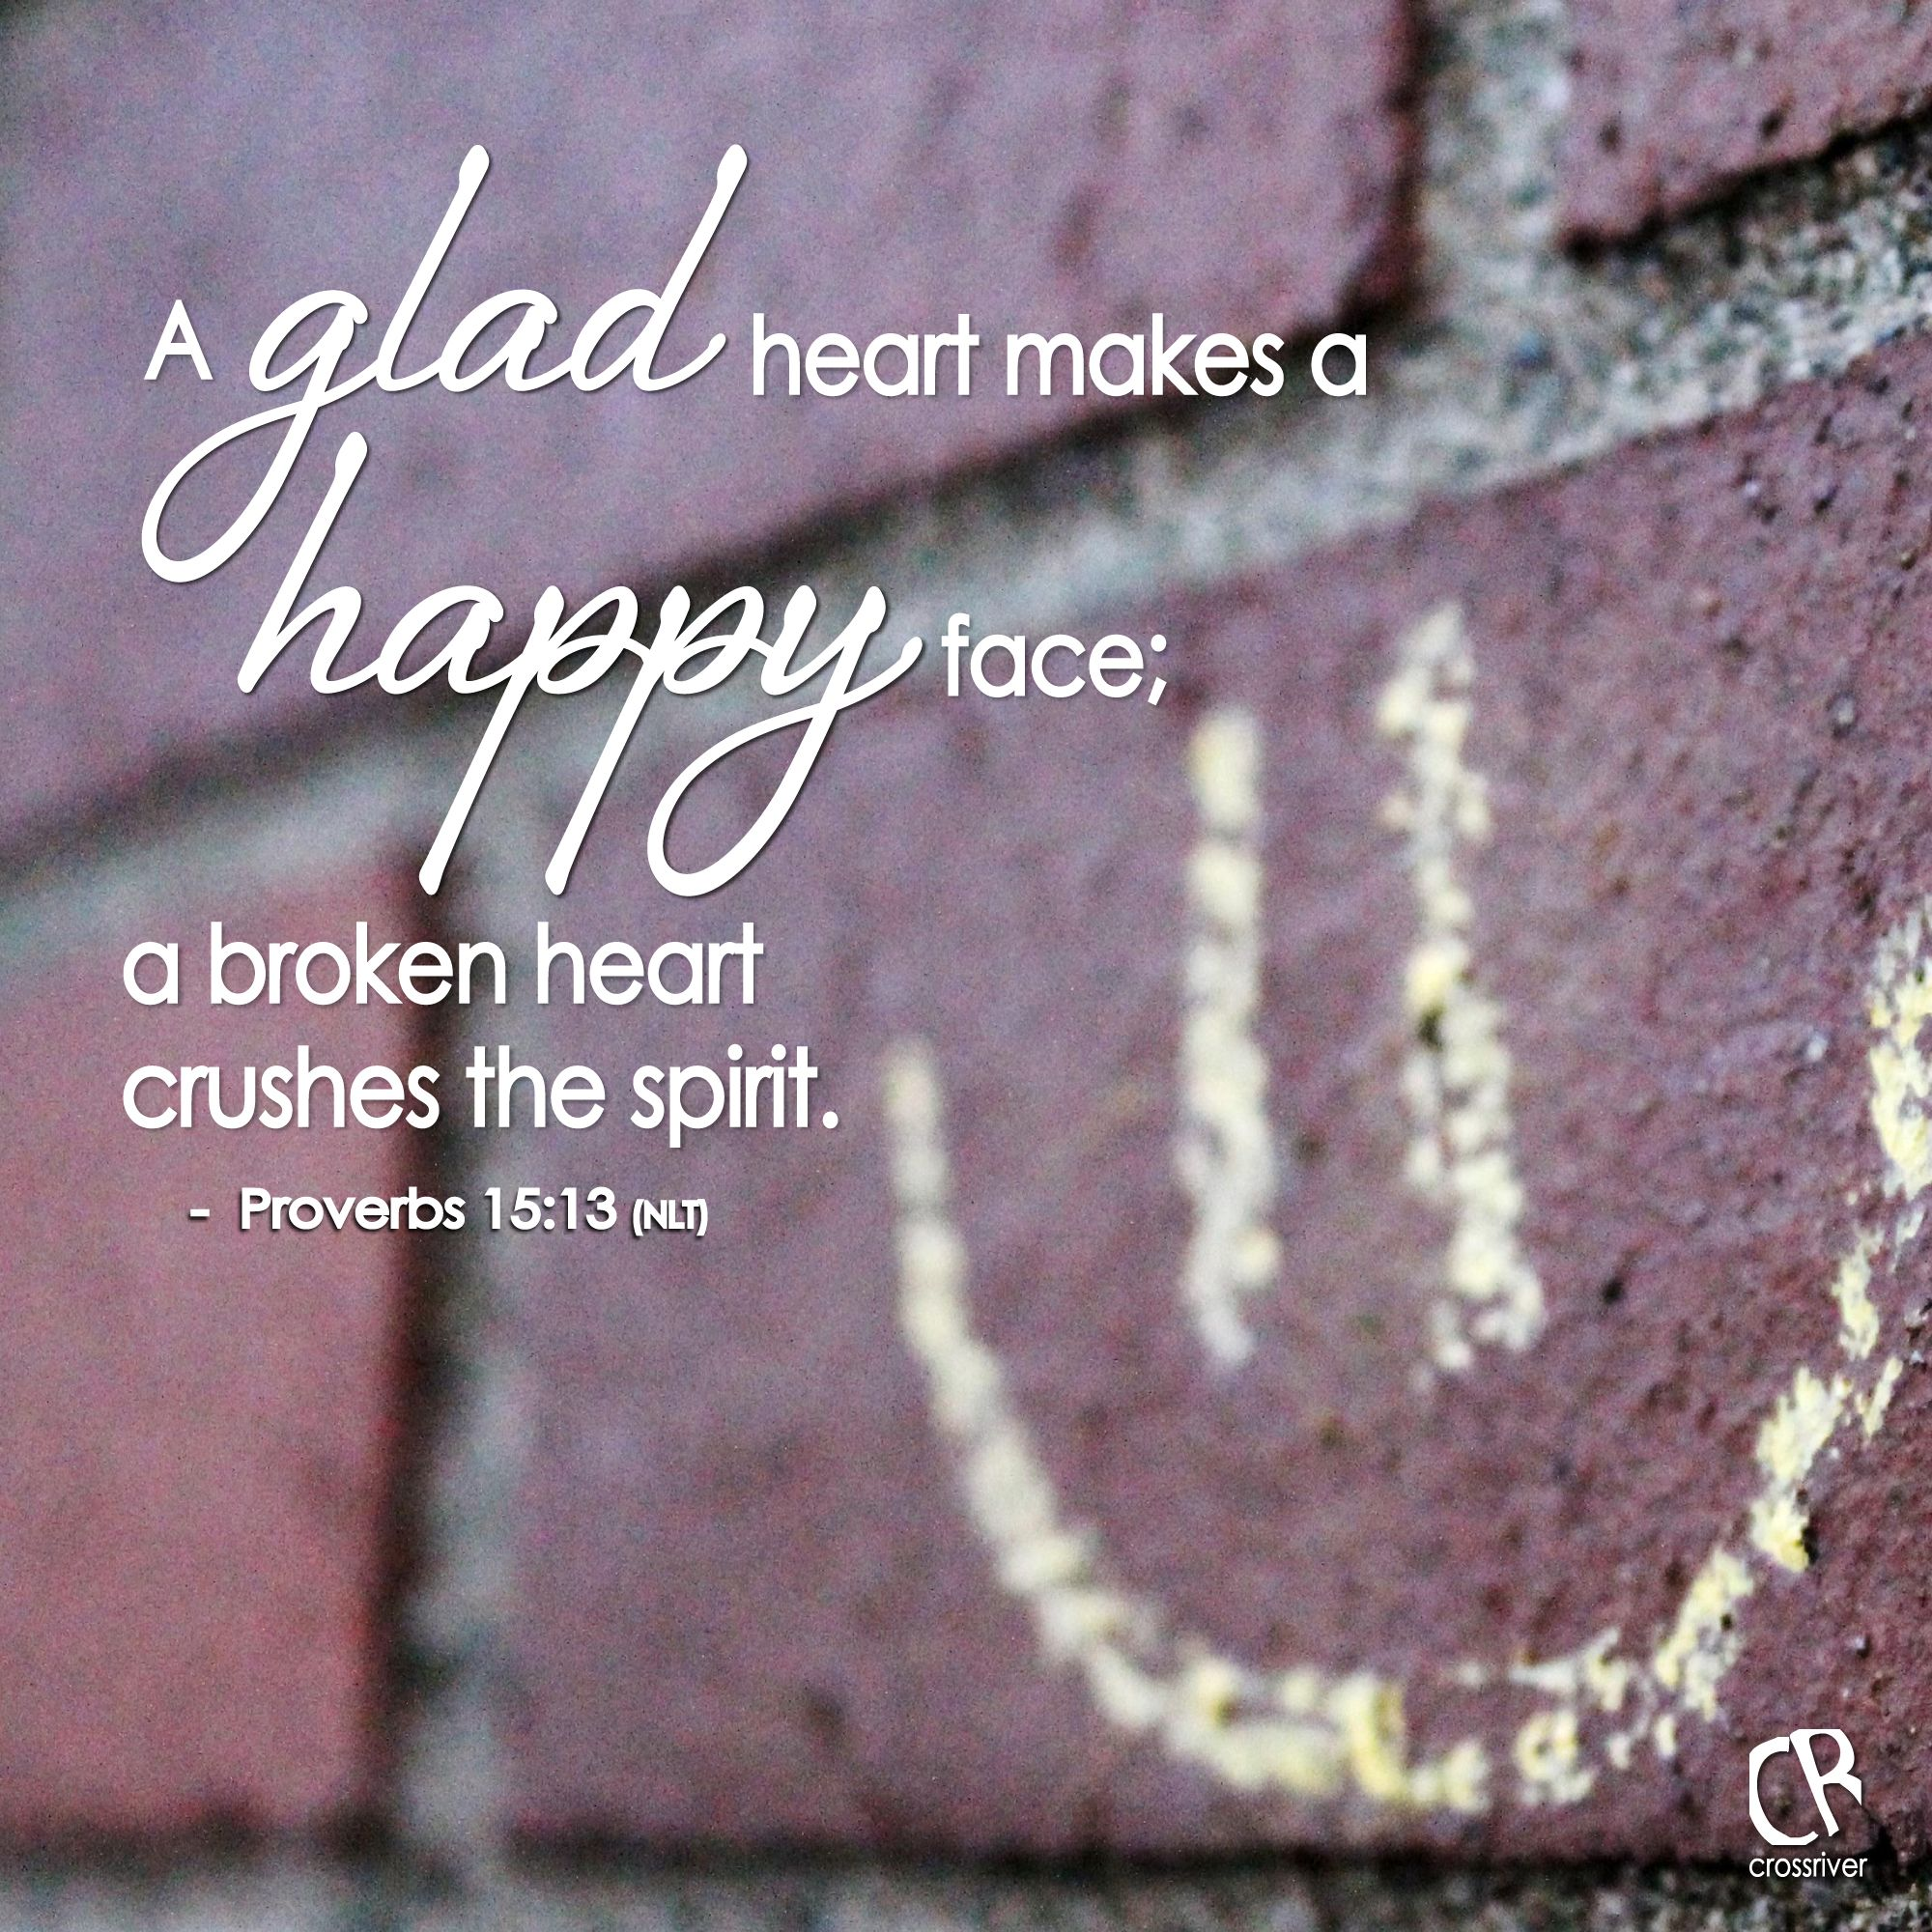 Bible Quotes Heart: A Glad Heart Makes A Happy Face; A Broken Heart Crushes